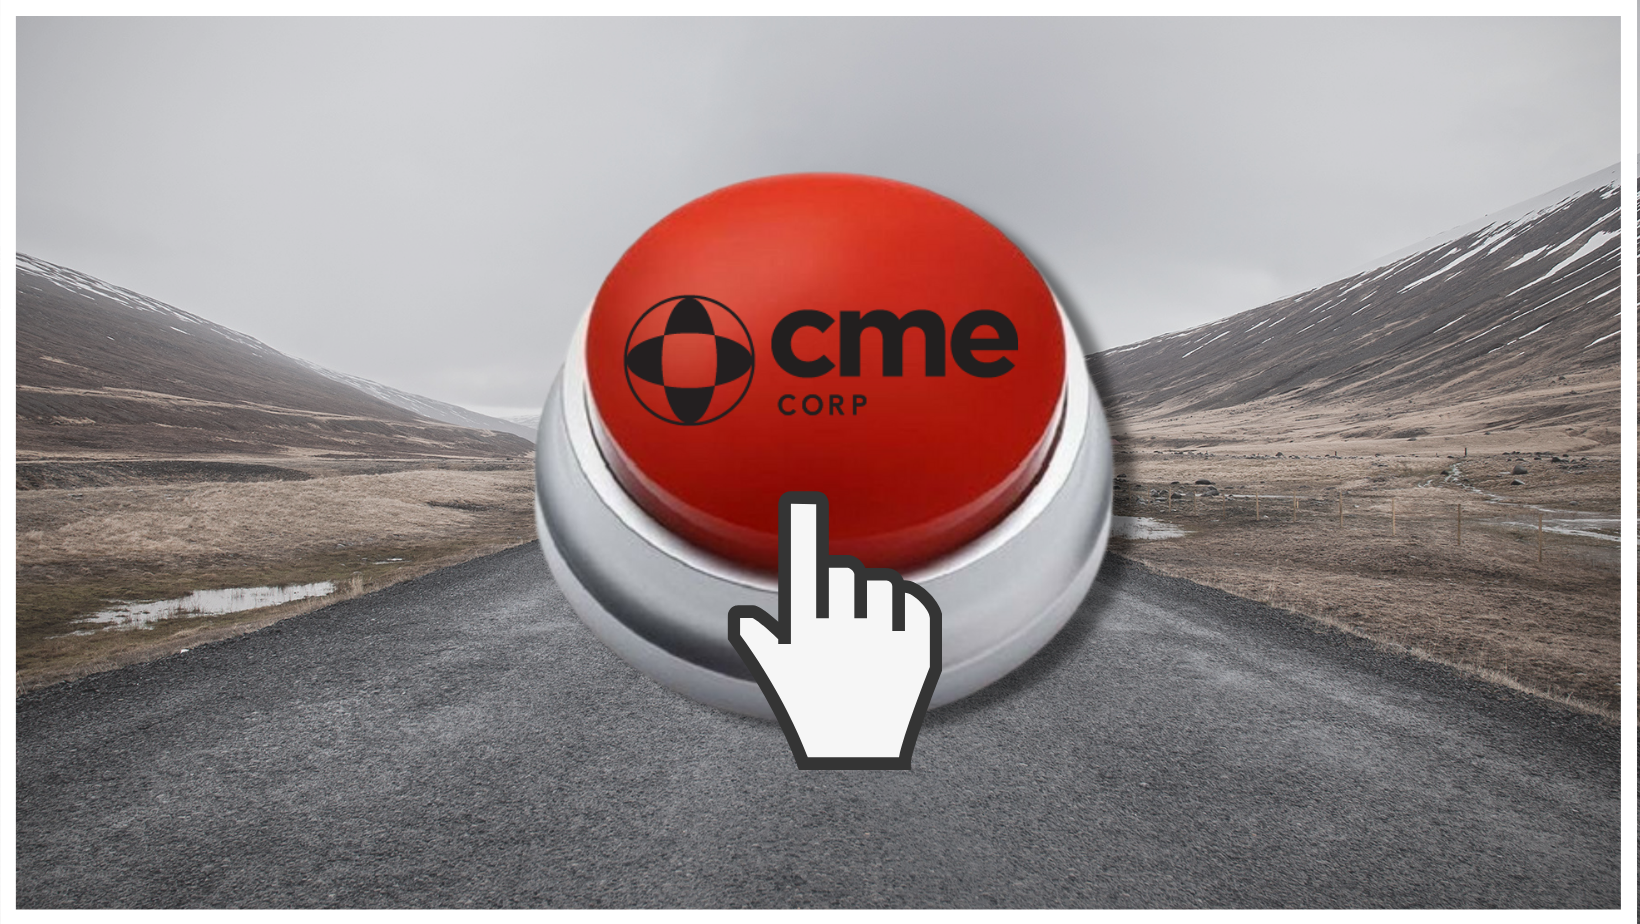 CME Corp makes it easy!